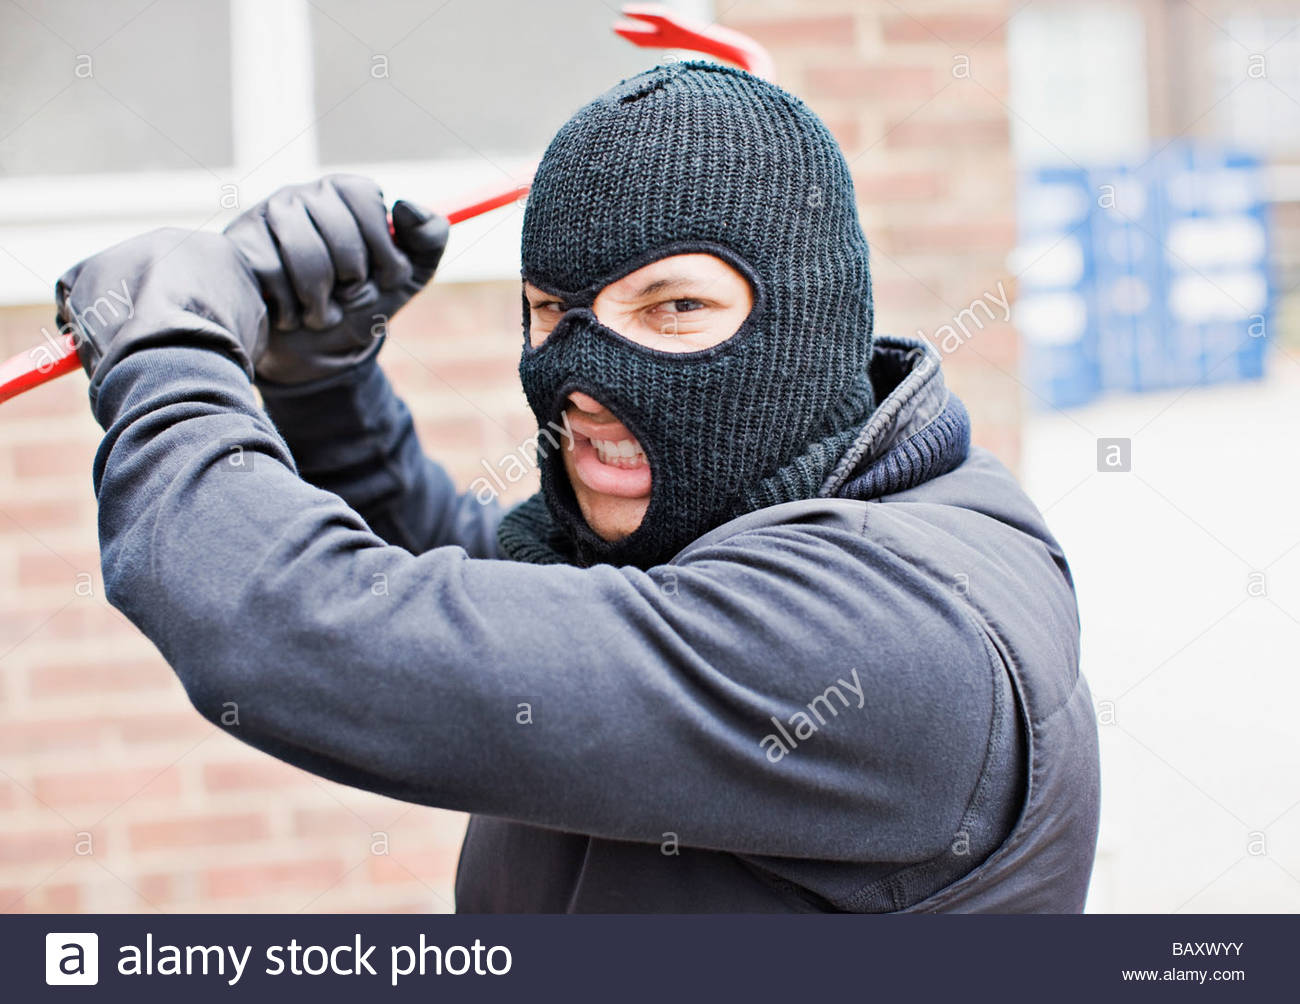 Burglar in ski mask wielding crowbar Stock Photo